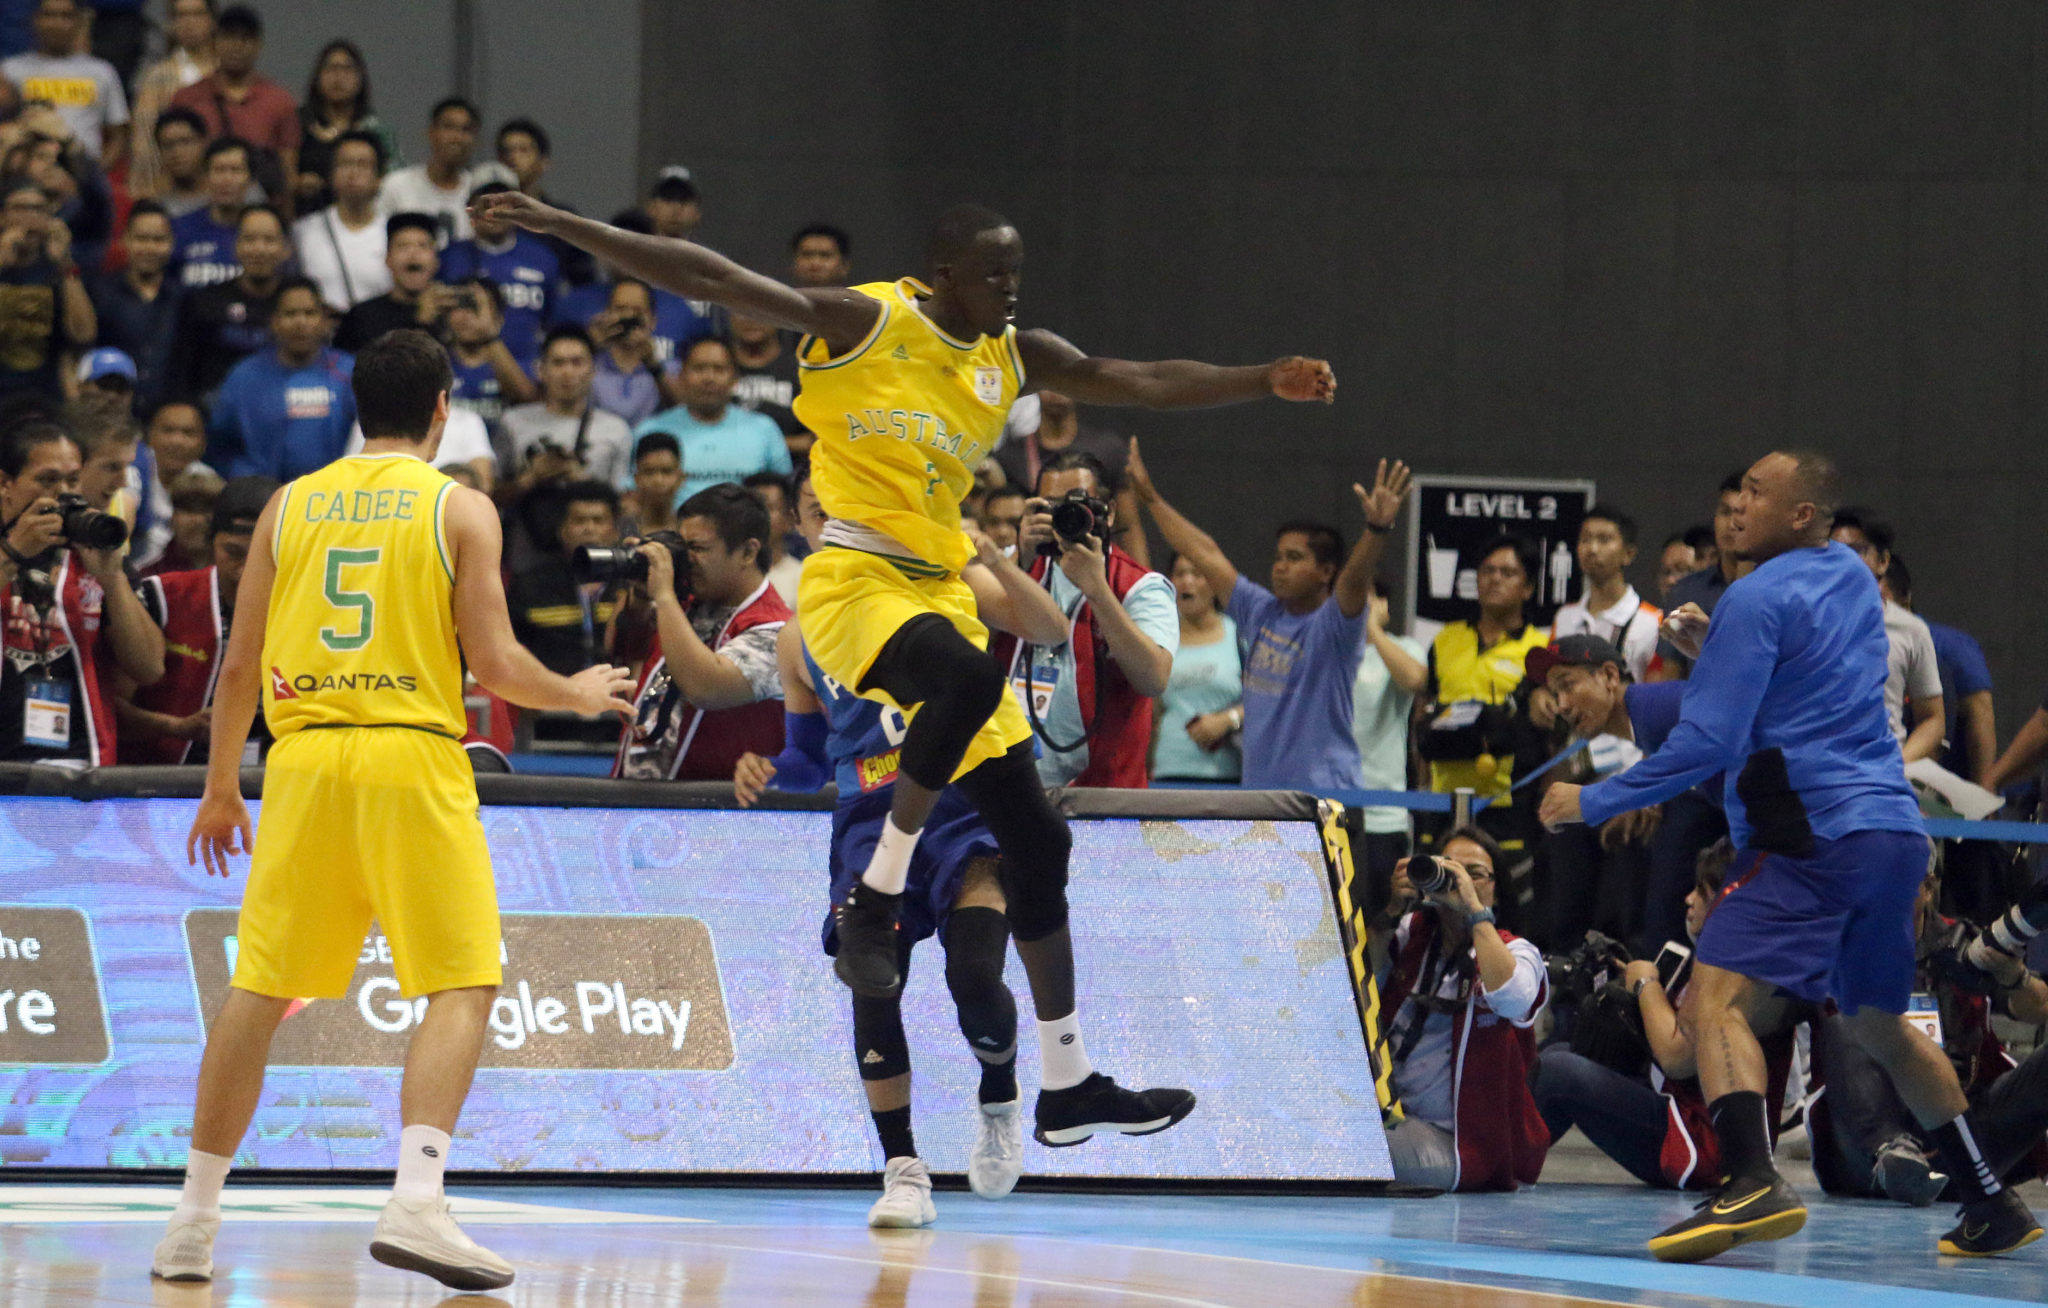 Australia vs Philippines basketball game erupts into ...